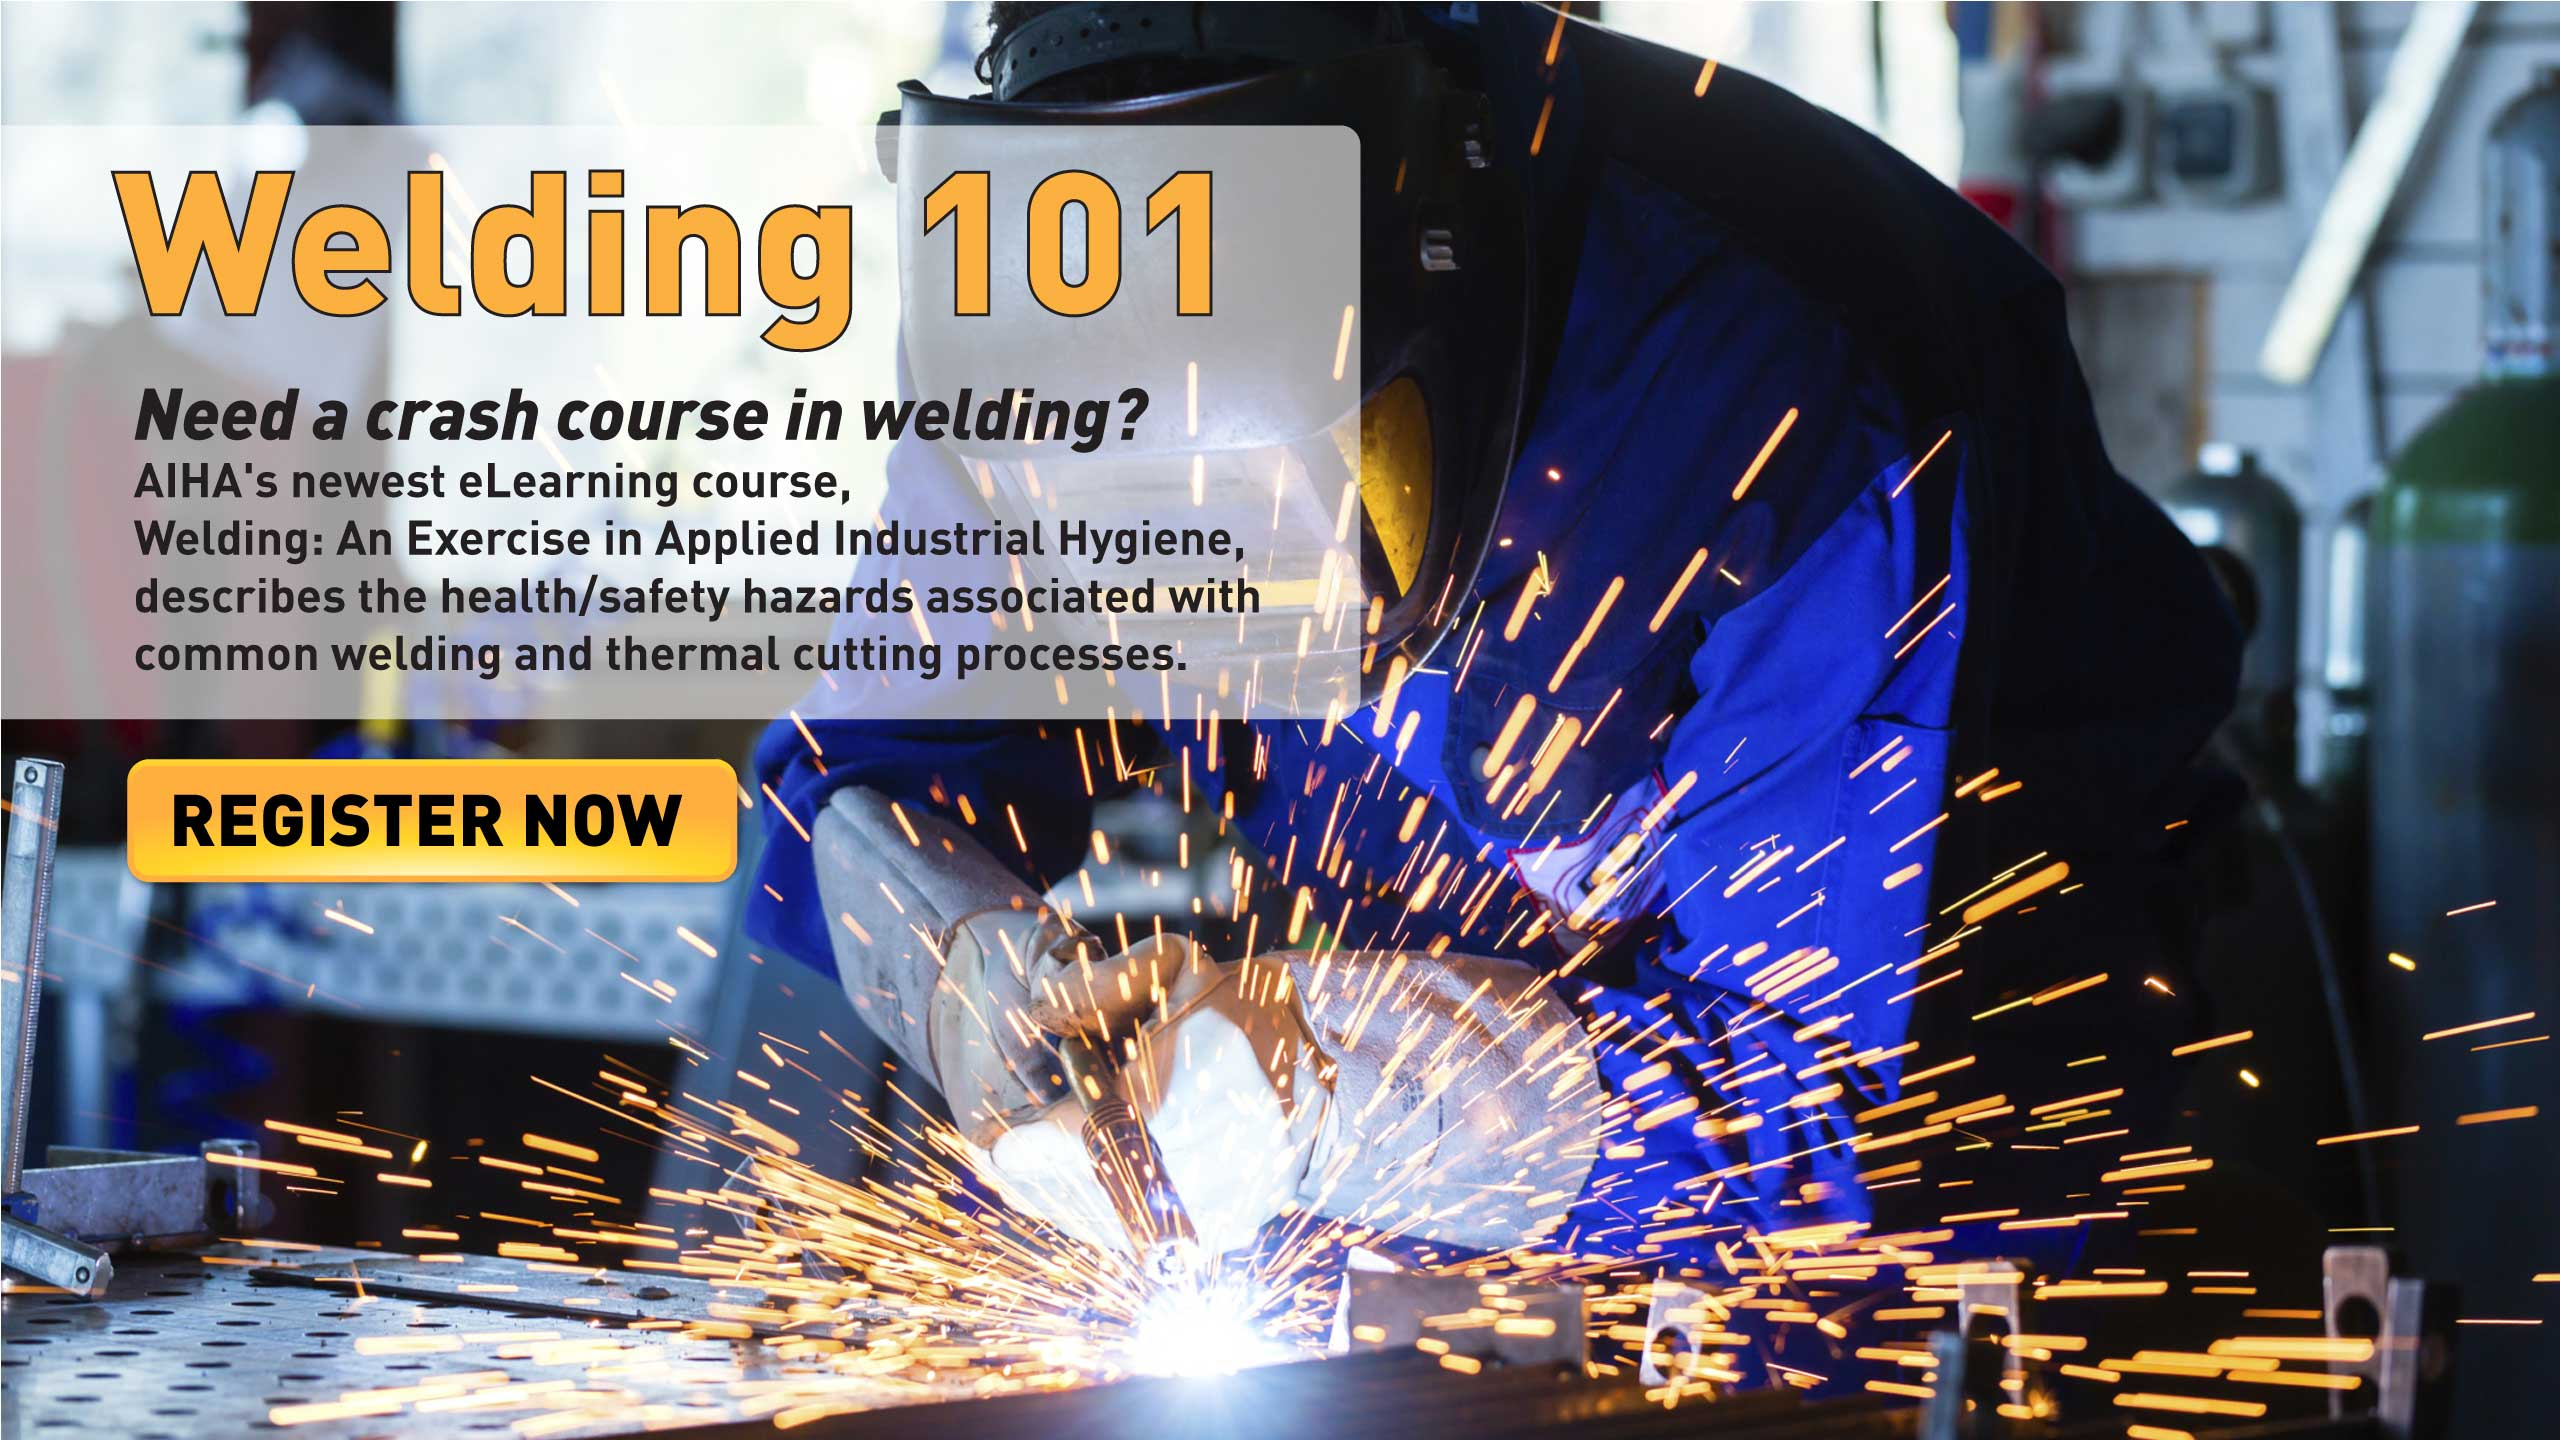 thumbnail for Welding Ad